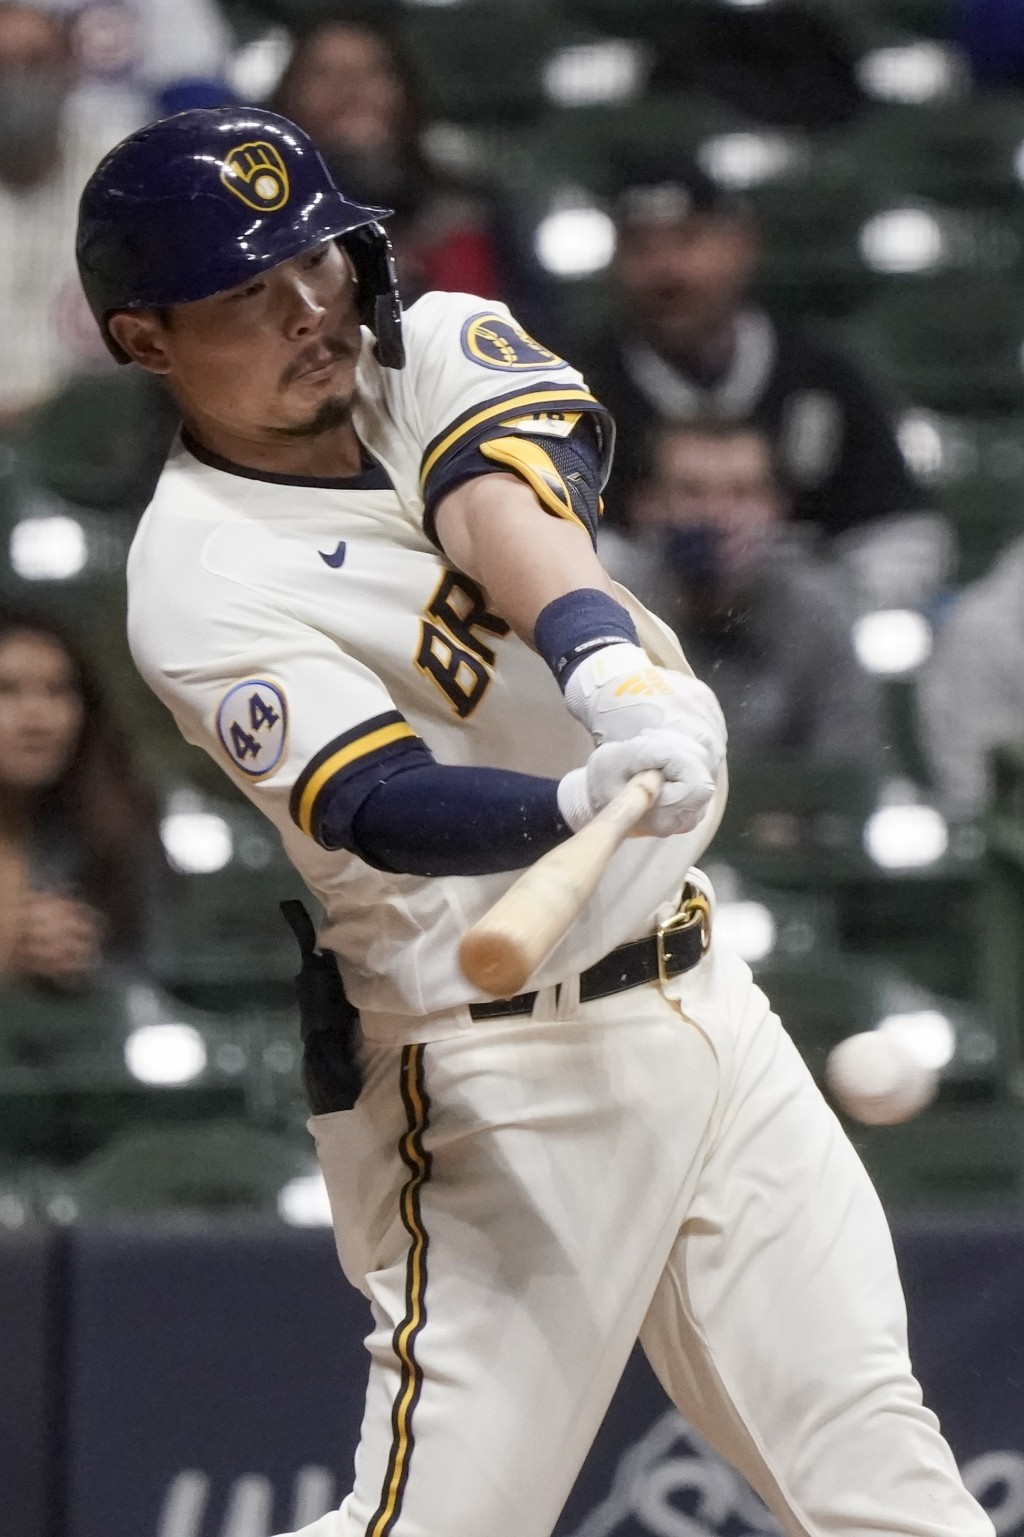 Milwaukee Brewers' Keston Hiura hits an RBI single during the sixth inning of a baseball game against the Chicago Cubs Monday, April 12, 2021, in Milw...